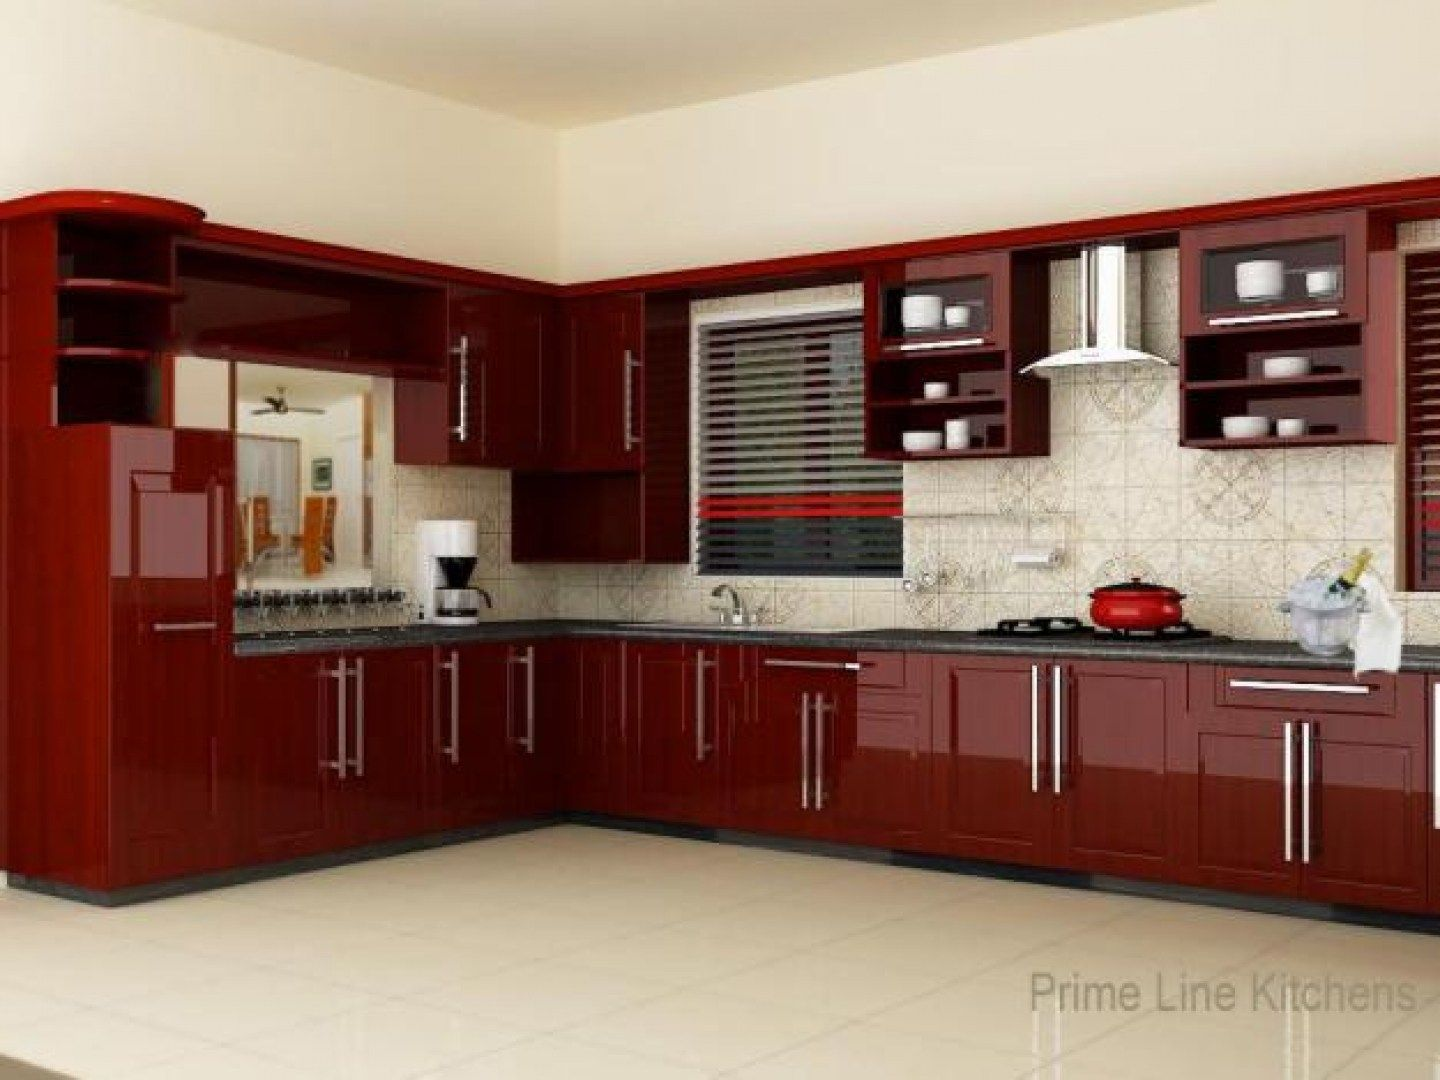 Kitchen design ideas kitchen woodwork designs hyderabad for Kitchen designs cabinets